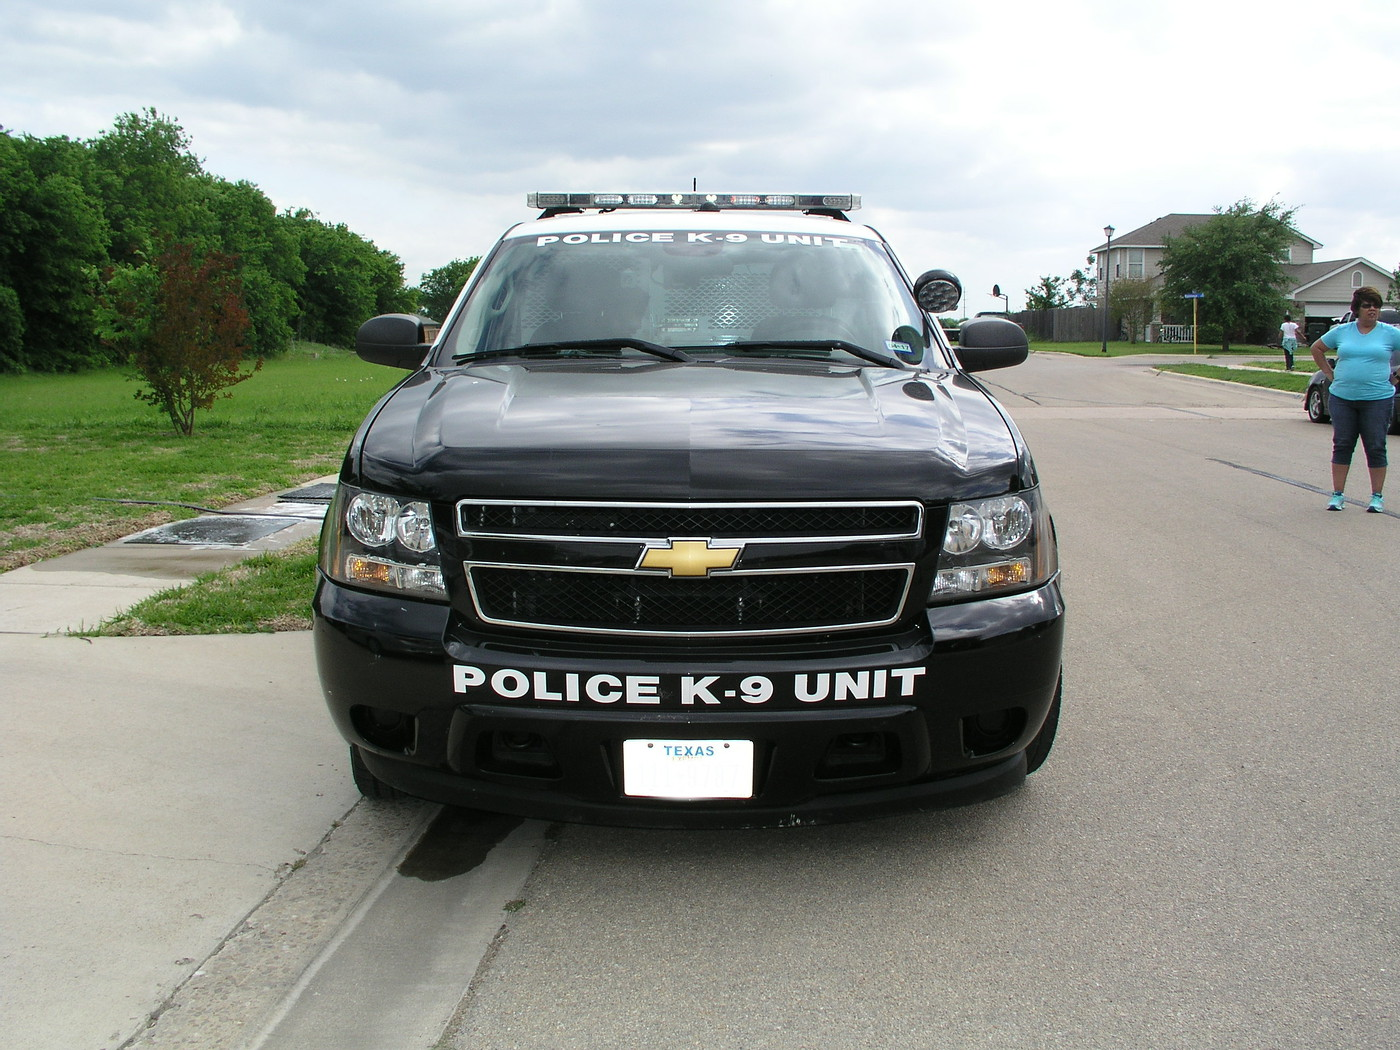 Chevy SUV Police K-9 Unit  BillAustinPic03